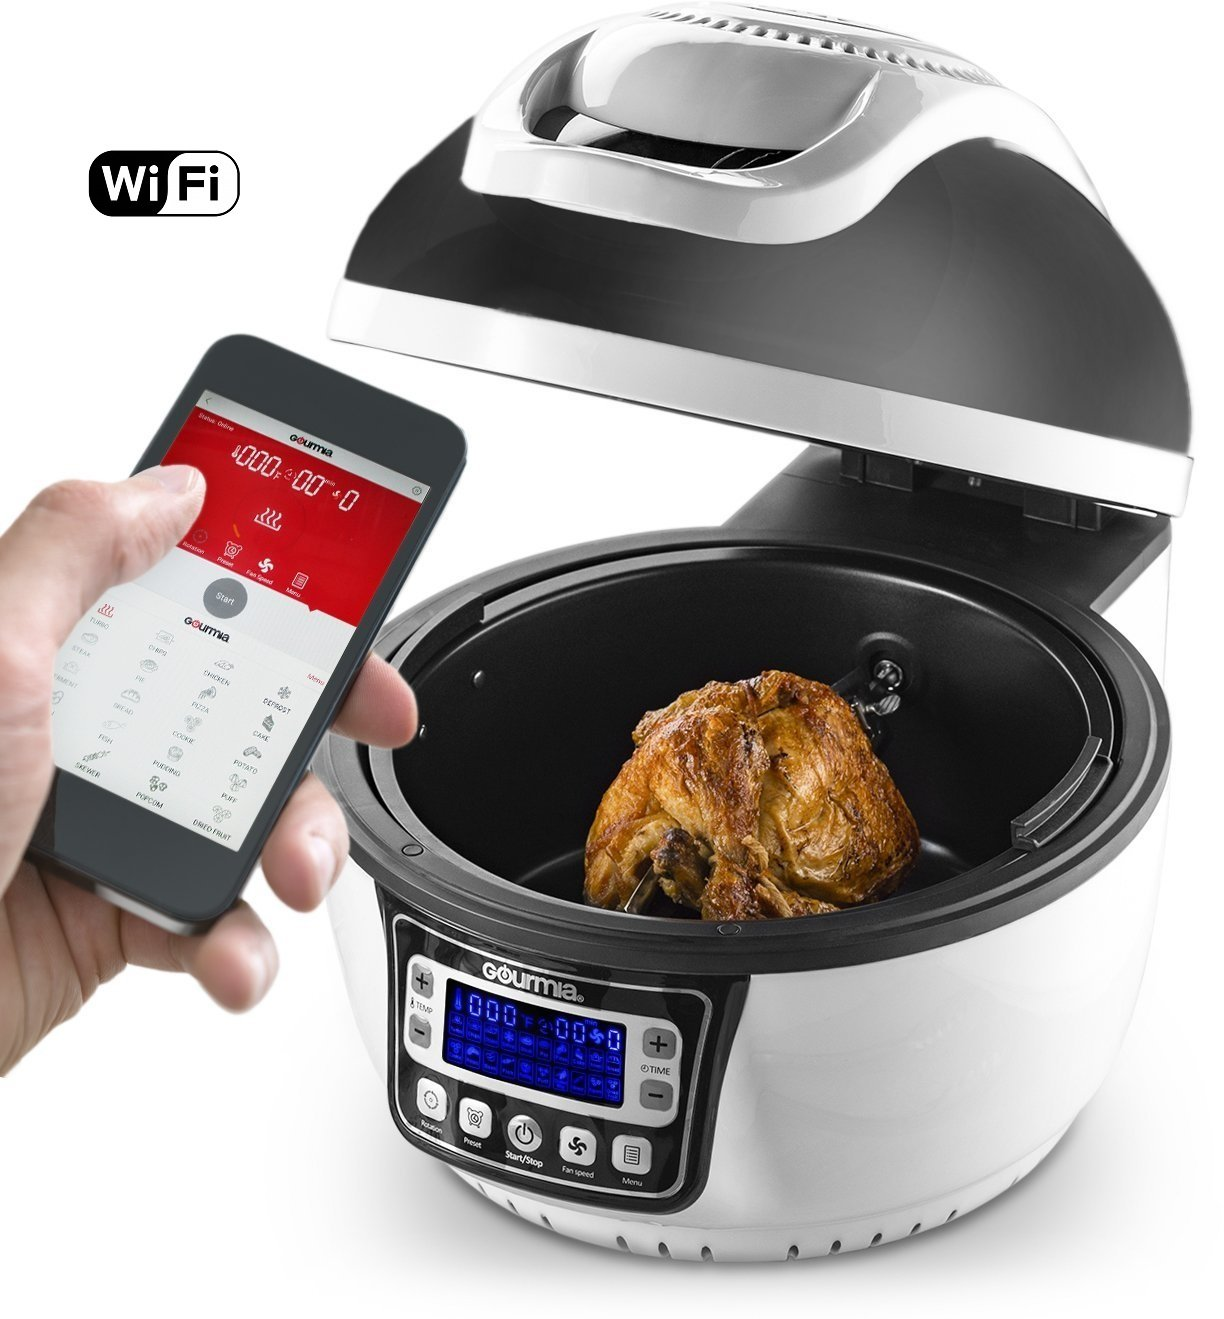 Gourmia GTA2800 WiFi Air Fryer - Multi Function Halogen Powered Rotating Rotisserie Grill & Electric Oven, 20 Cooking Functions, Programmable Timer, Includes 11pc Kit & Free Recipe Book - 110V by Gourmia (Image #1)